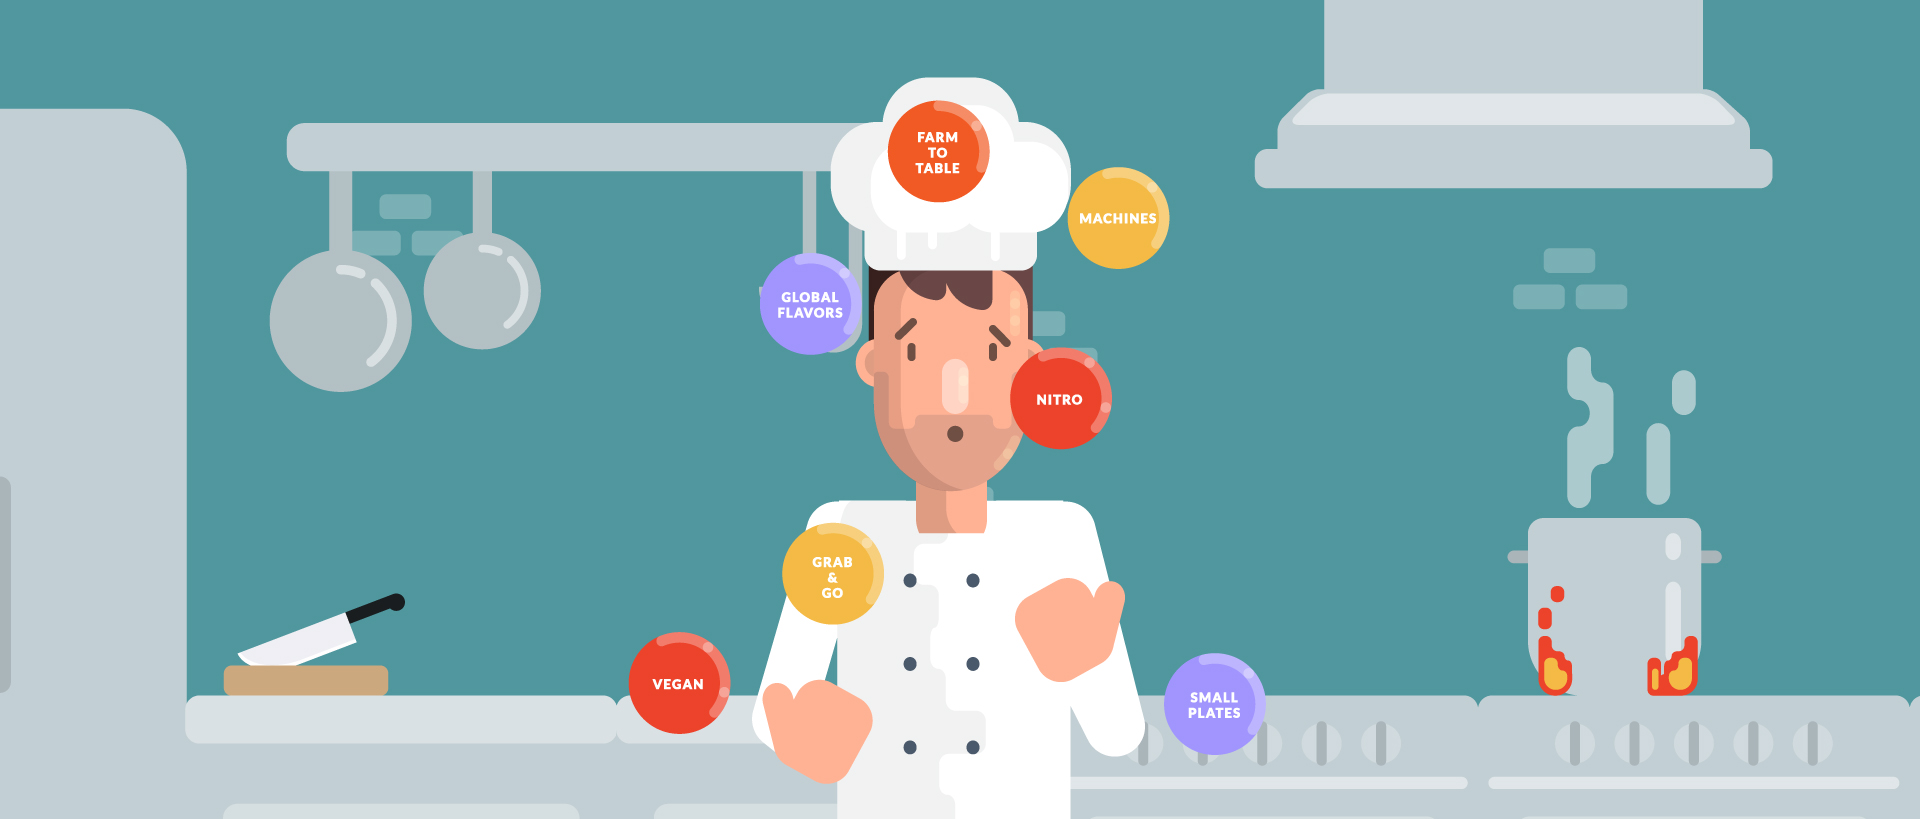 _header_Restaurant-Industry-at-a-Glance.jpg